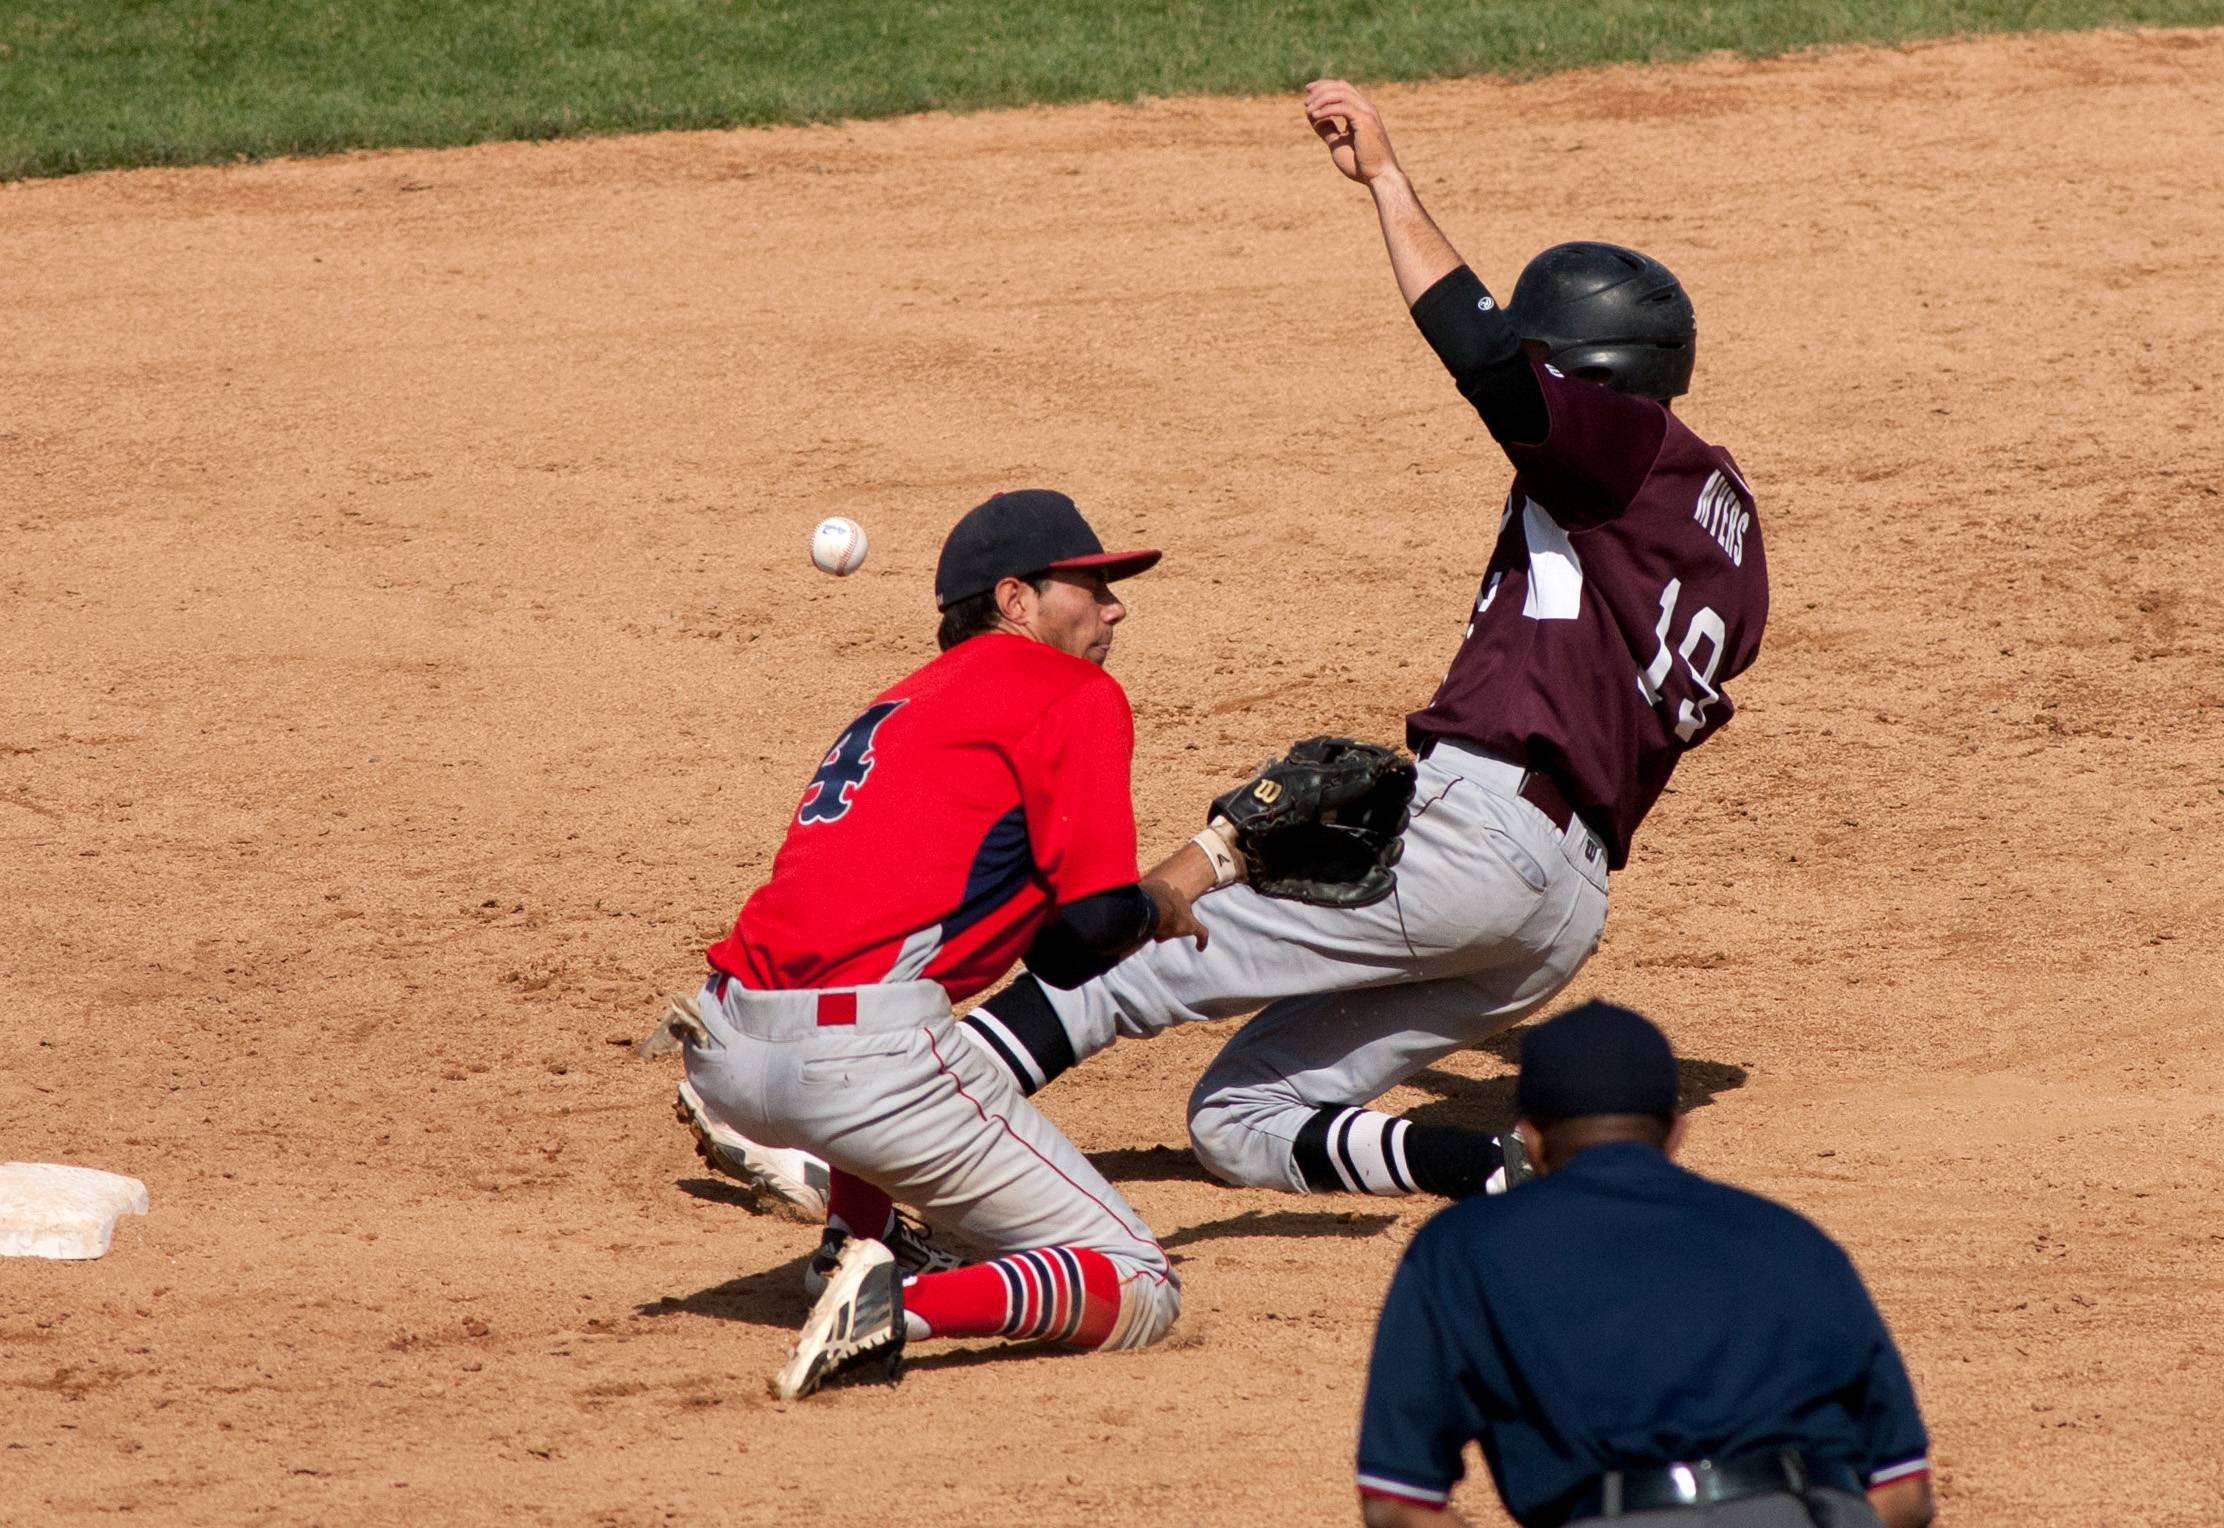 Prairie Ridge's John Myers (19) slides safely into second base past South Elgin's Dane Toppel (4) during the Class 4A third-place game at Silver Cross Field in Joliet.